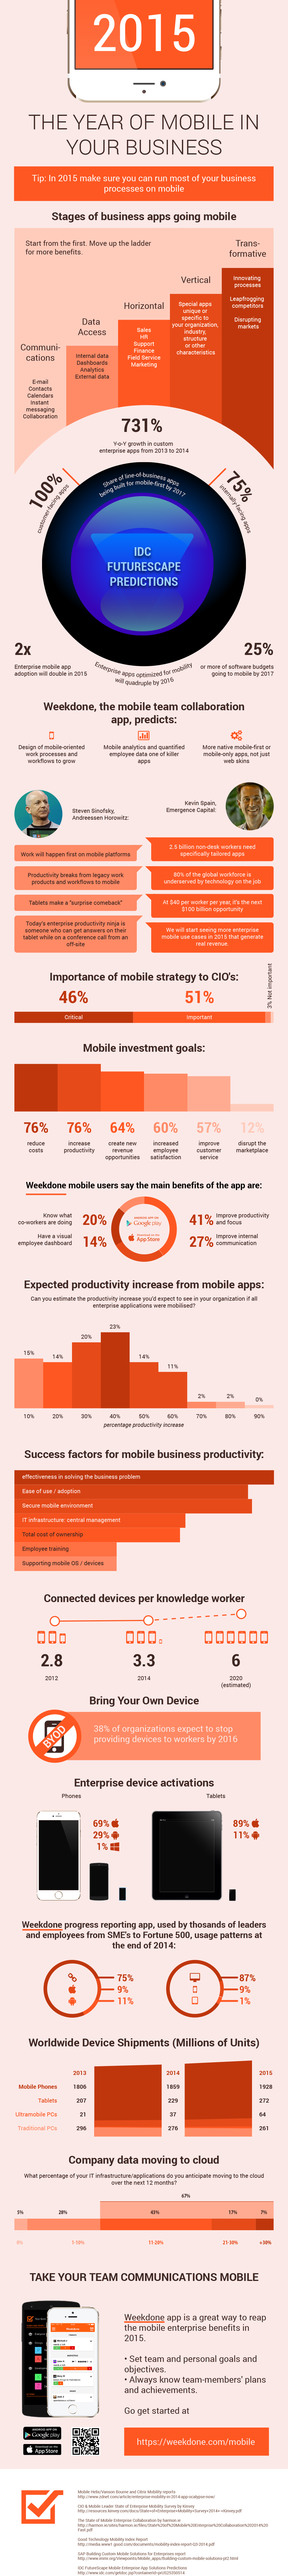 The Year of Mobile in Your Business [infographic]